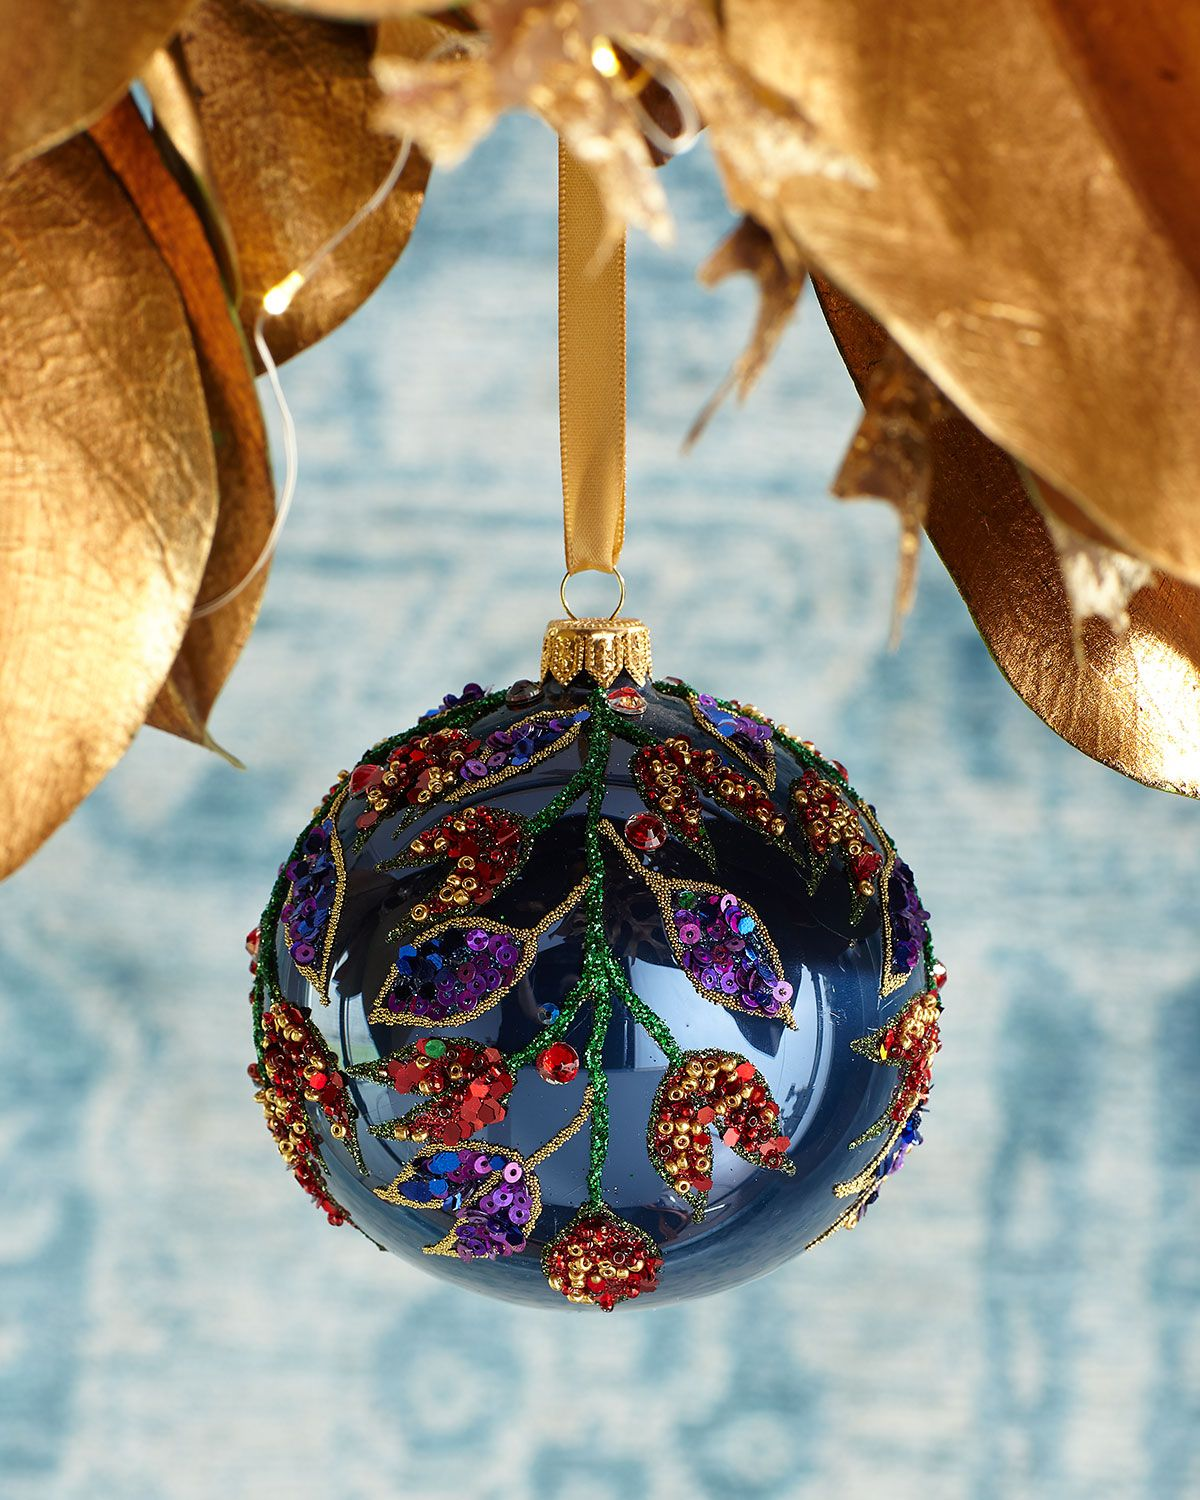 Neiman Marcus Luxury Christmas Gifts For 2020 Leaves Beaded Ball Christmas Ornament, Blue in 2020 | Christmas